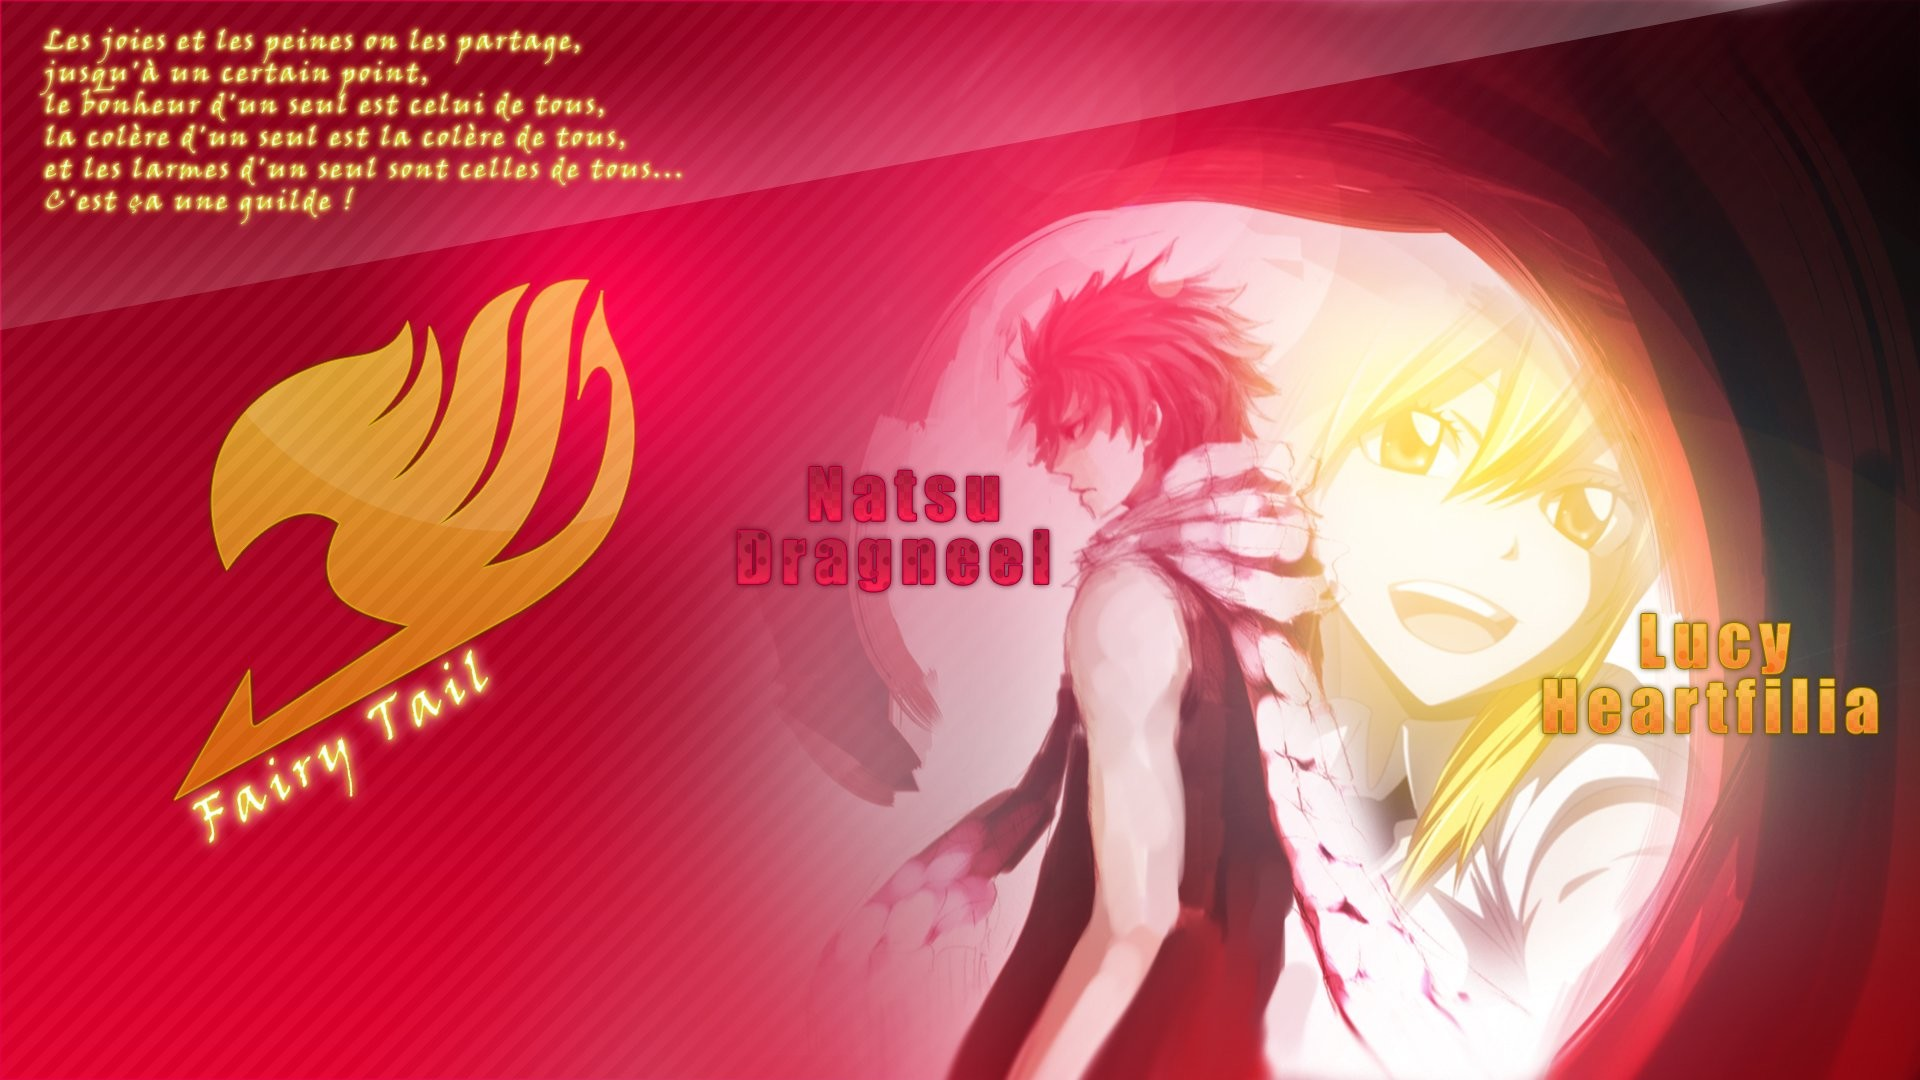 2880x1800 Fairy Tail Natsu And Lucy Wallpaper Desktop Background Is Cool Wallpapers